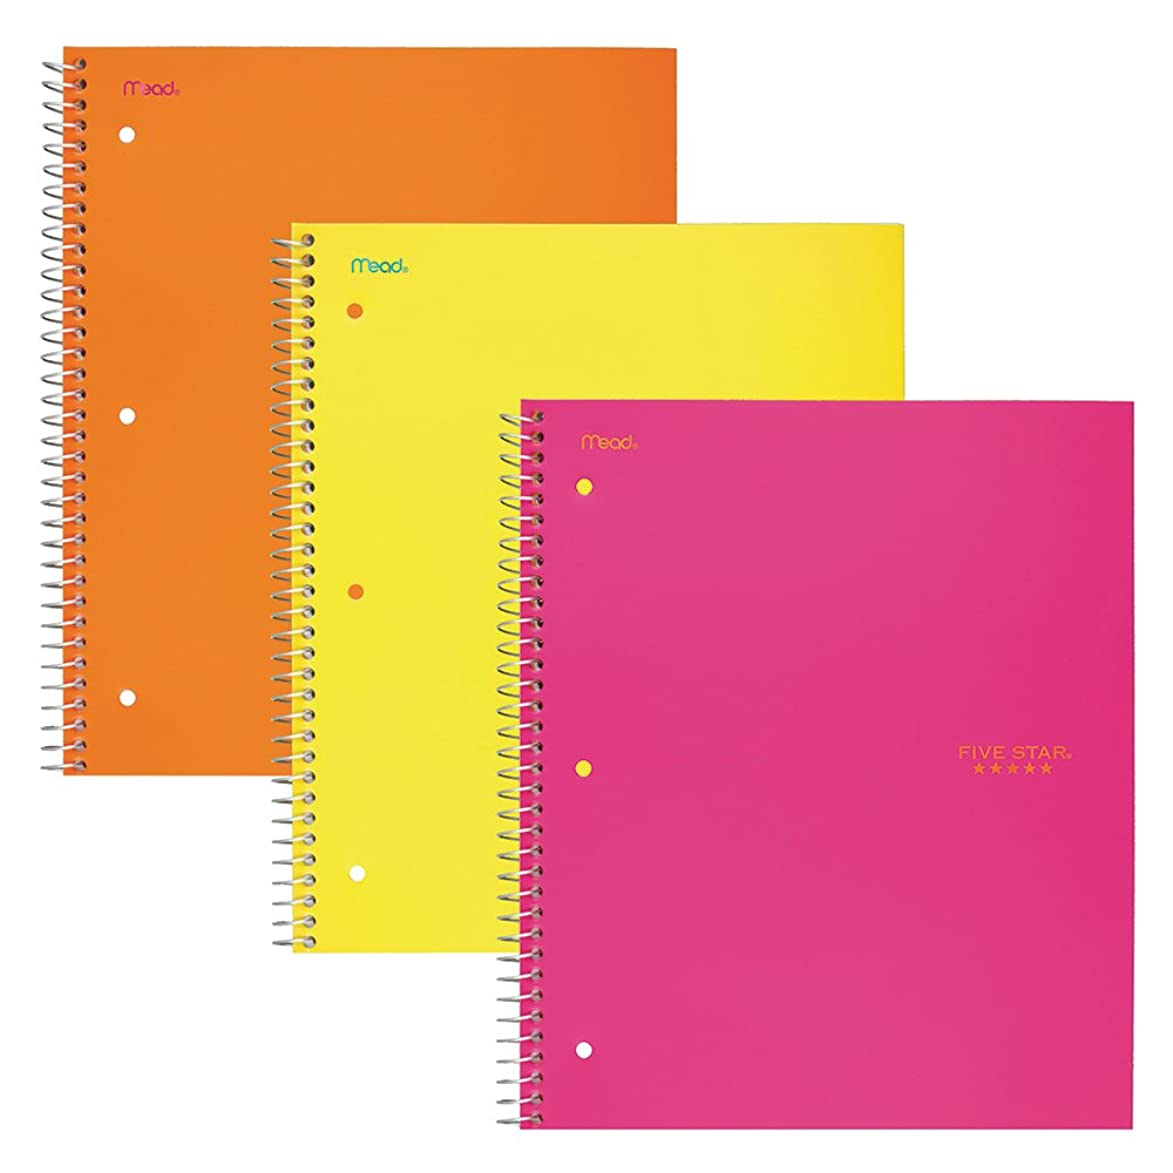 Five Star Spiral Notebooks, 3 Subject, Wide Ruled Paper, 150 Sheets, 10-1/2